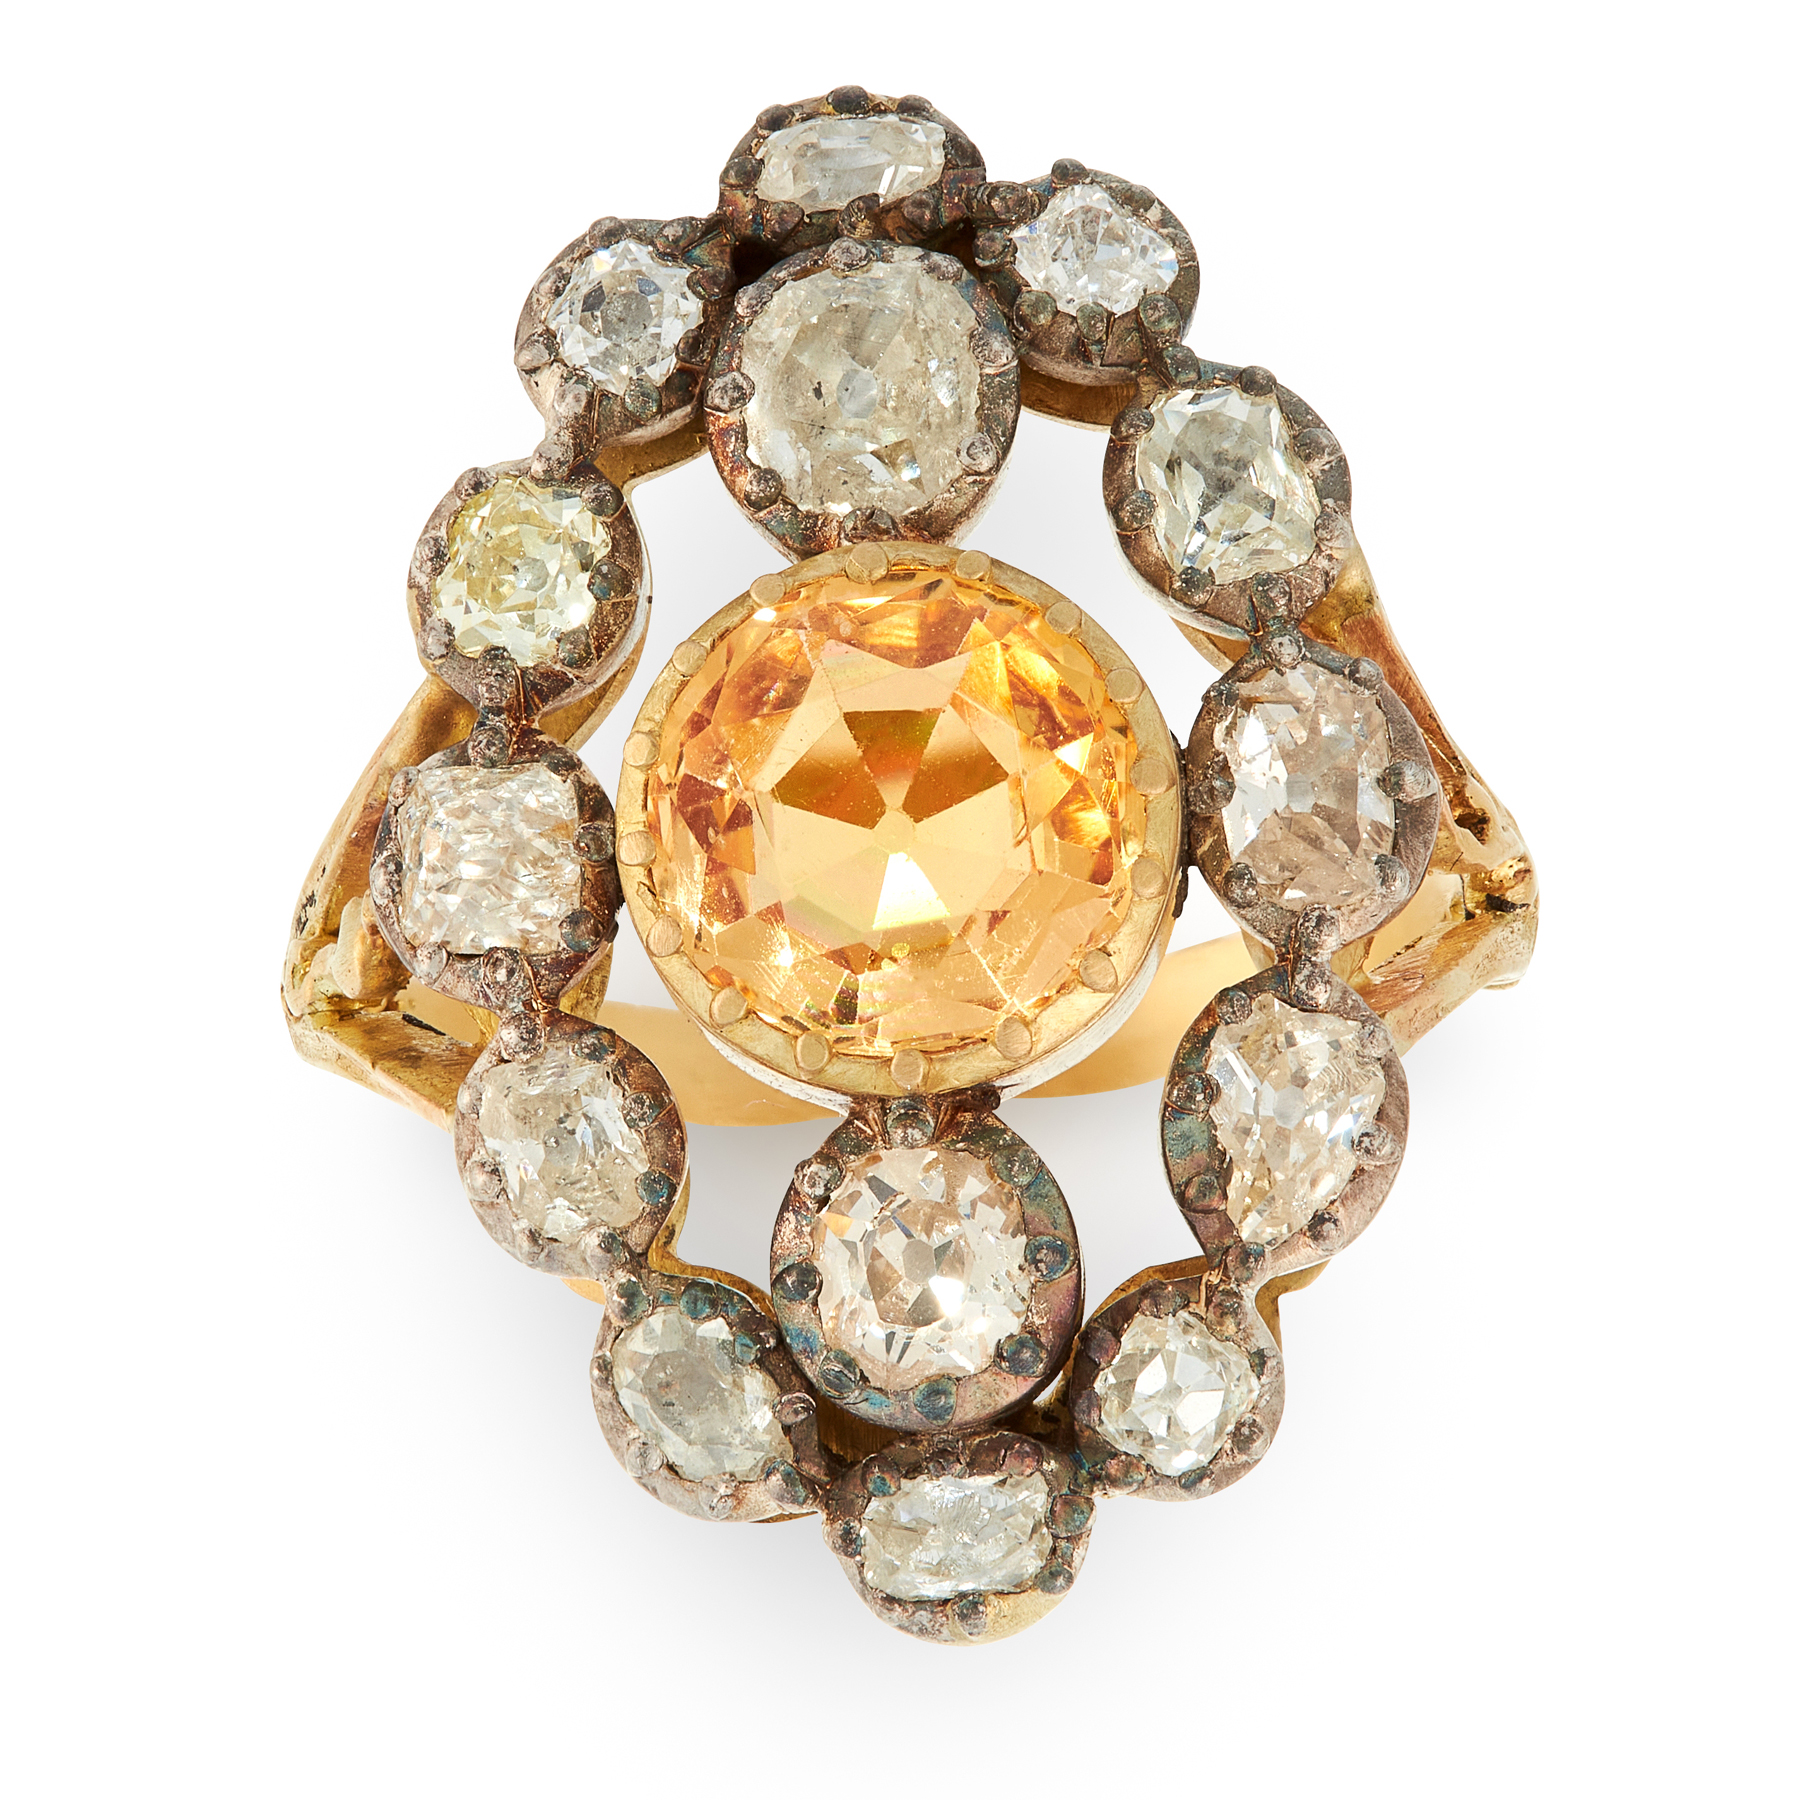 AN ANTIQUE IMPERIAL TOPAZ AND DIAMOND RING in high carat yellow gold and silver, set with a round